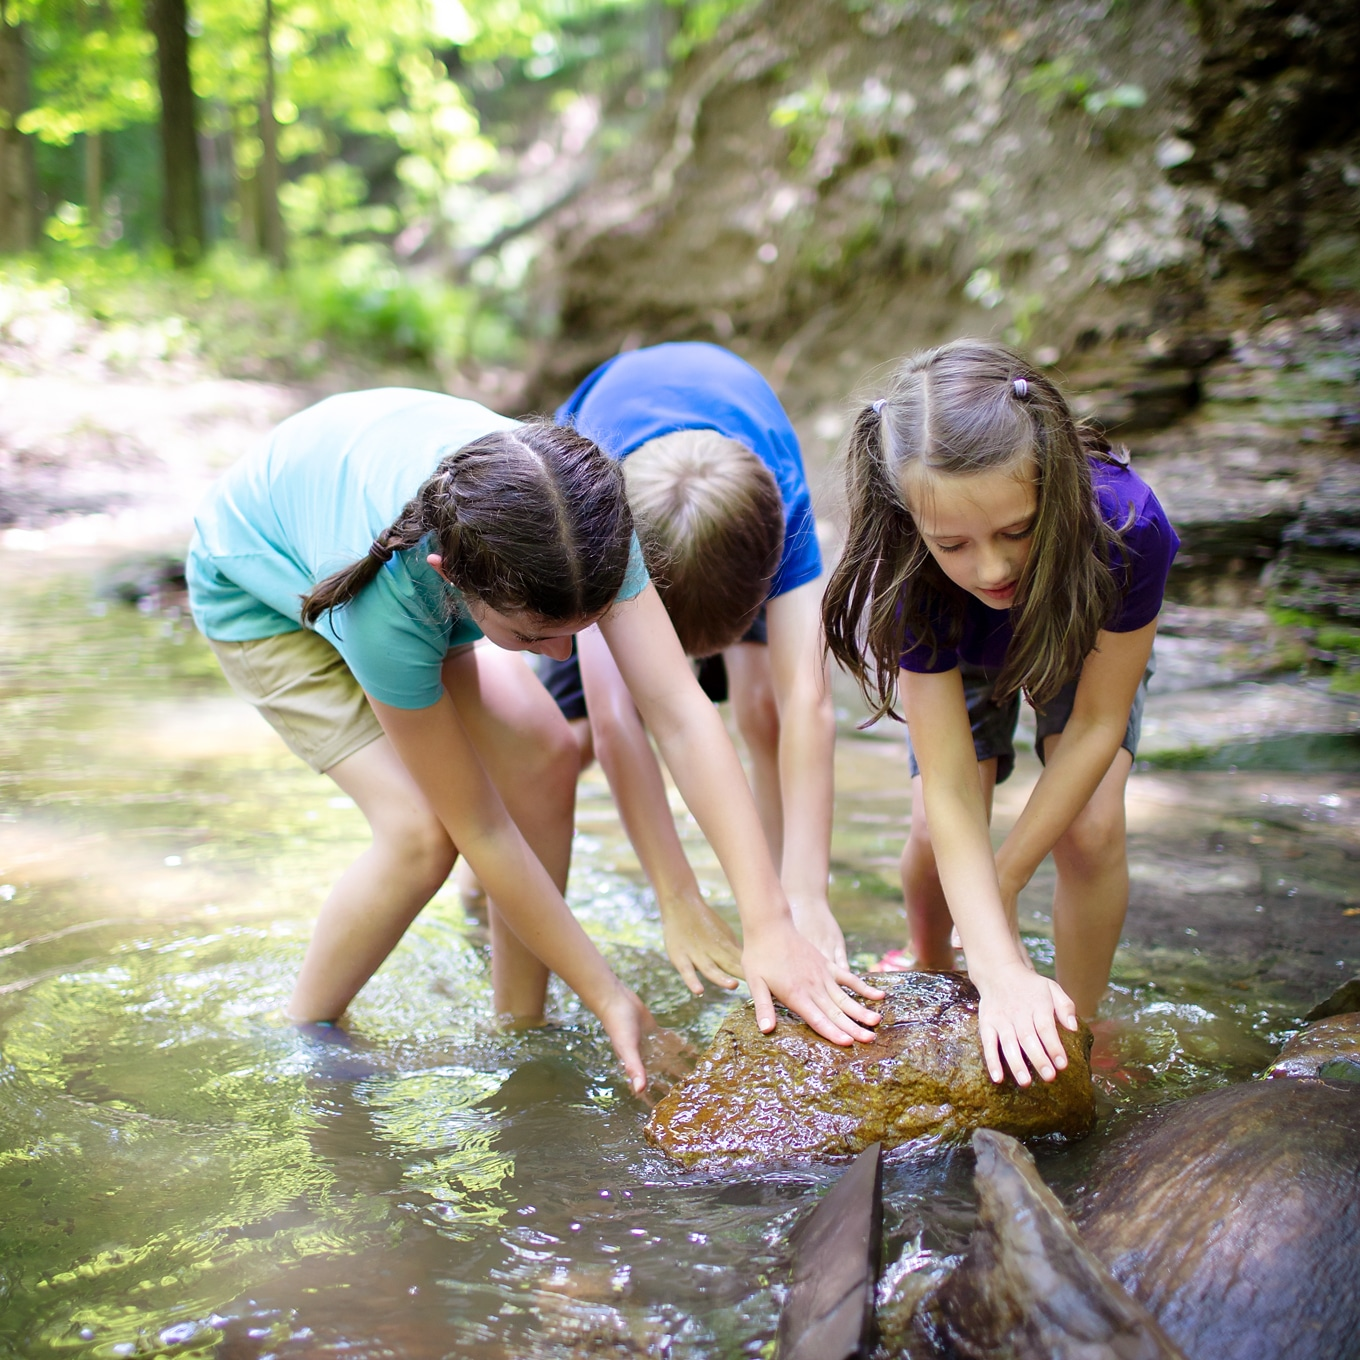 Children Rolling Rock in Creek